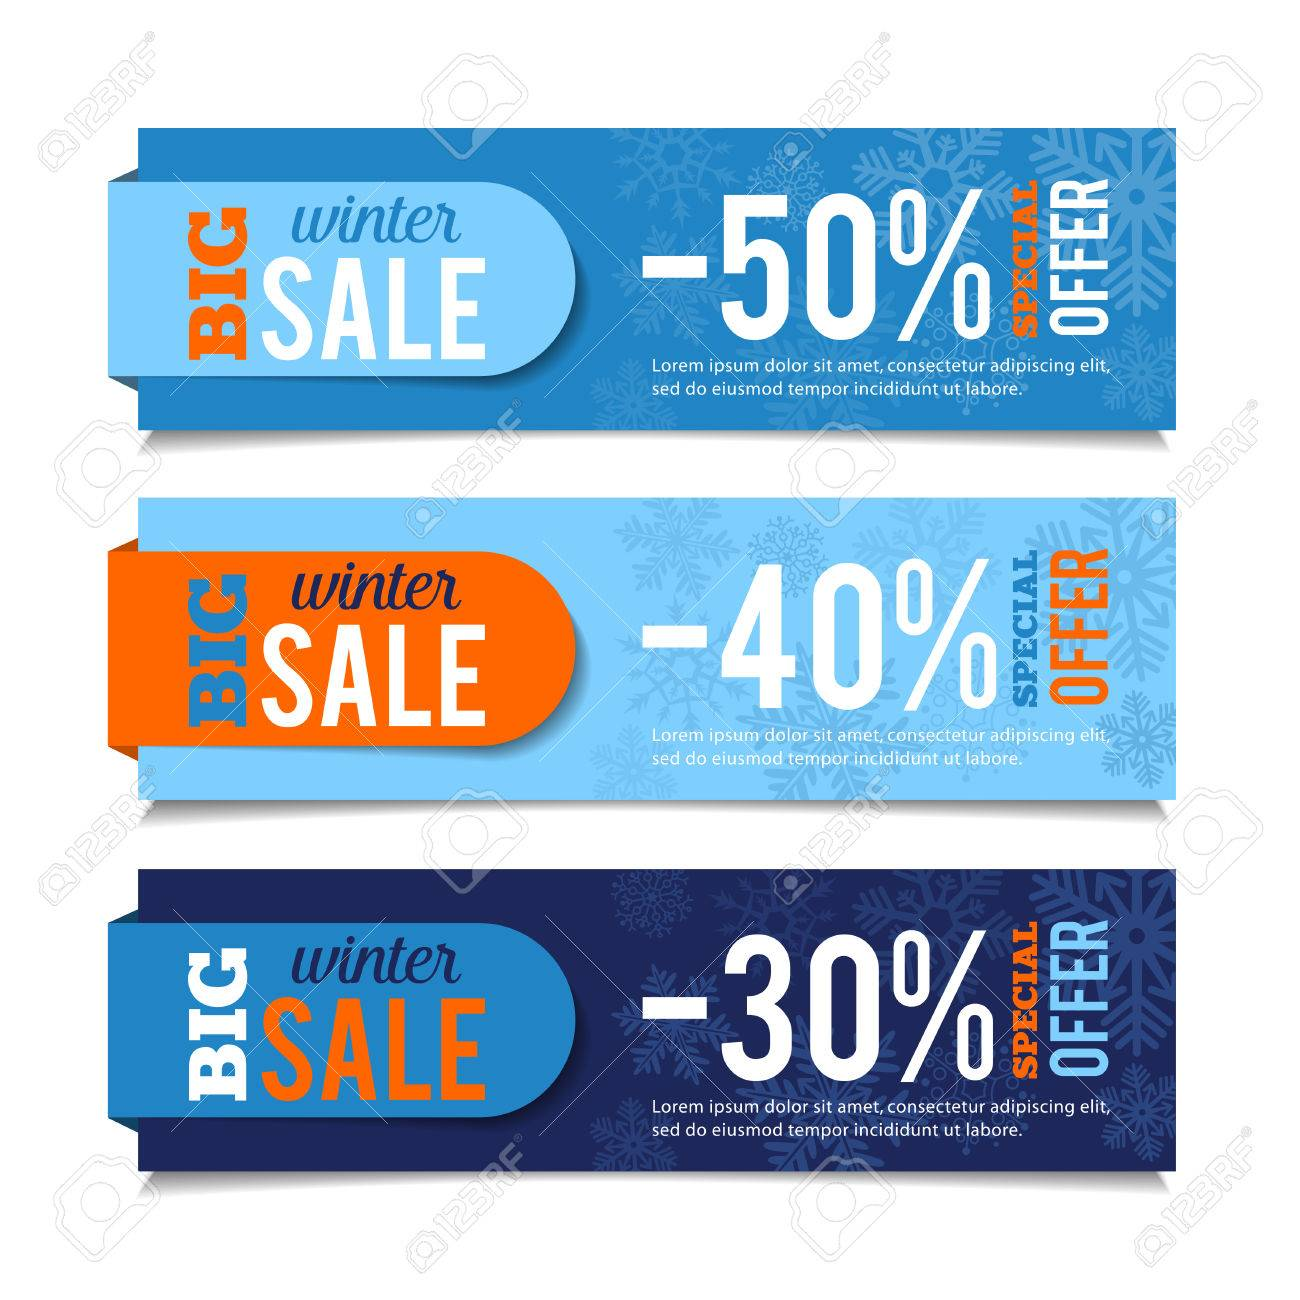 Winter sales banners, seasonal advertising, marketing events. For web or print. Vector graphic. - 50372221